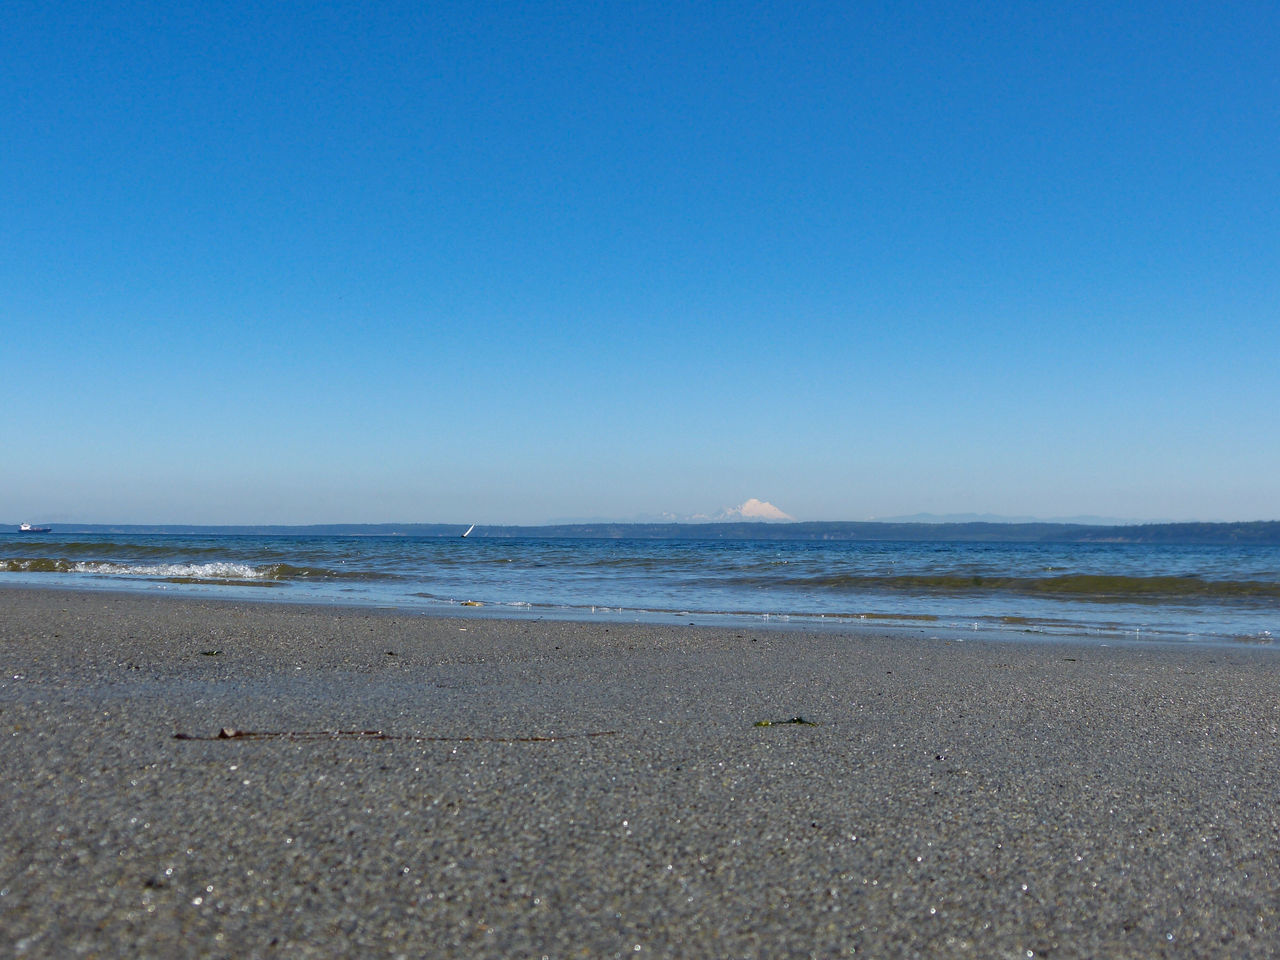 Beach Beach Photography Beachphotography Beauty In Nature Blue Clear Sky Coastline Day Idyllic Mt. Baker Nature No People Non-urban Scene Outdoors Remote Scenics Sea Shore Sky Tranquil Scene Tranquility Water